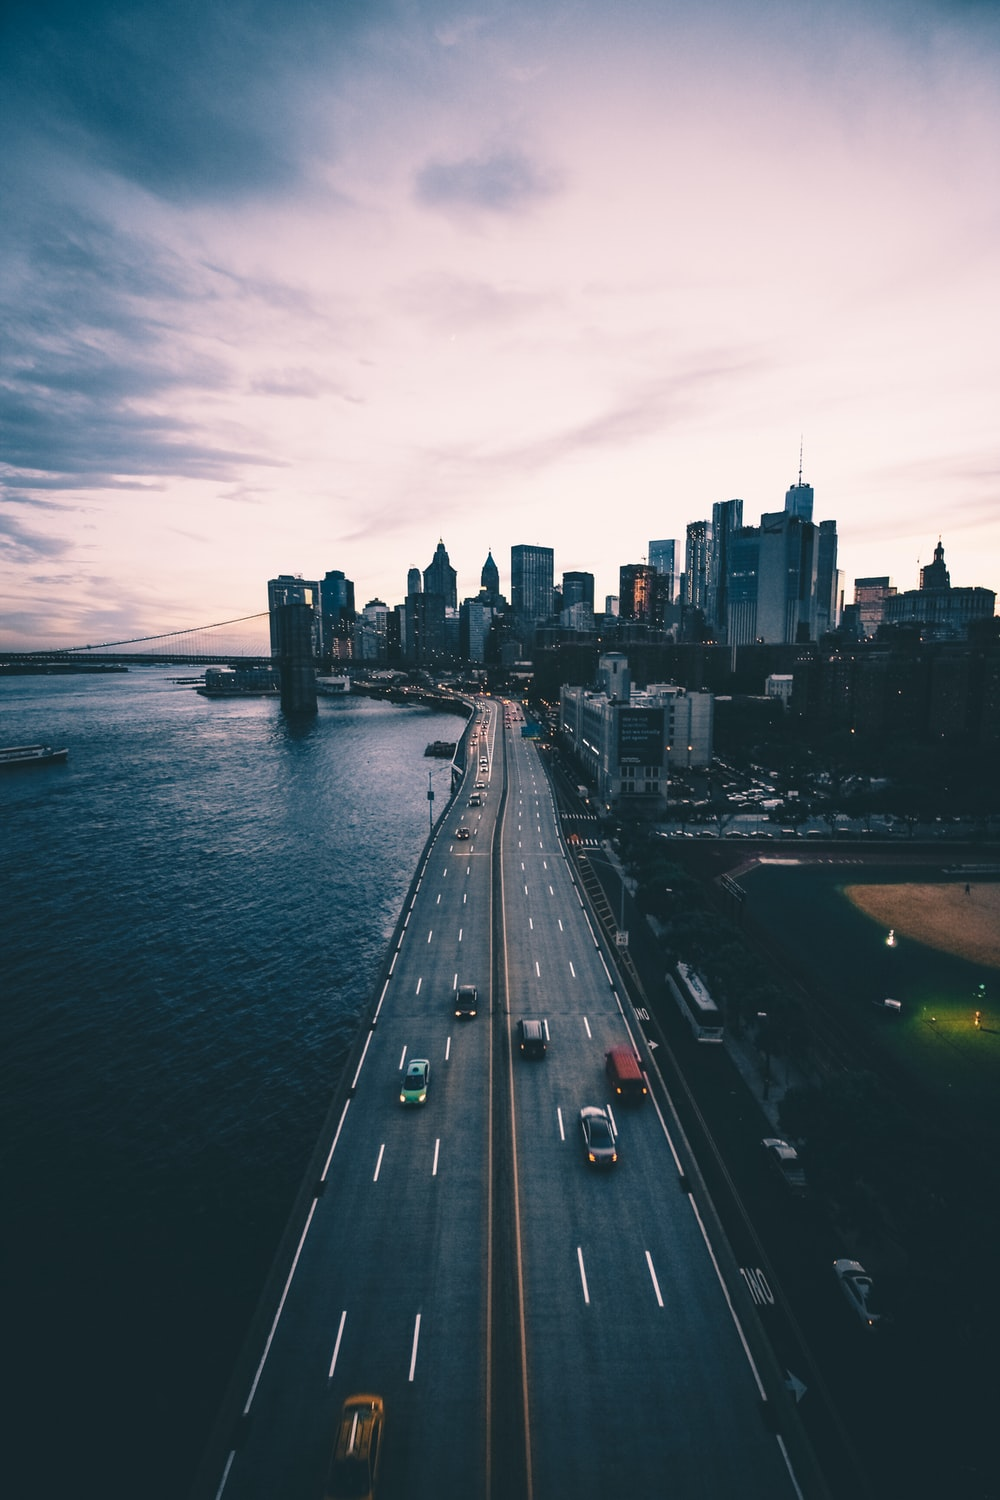 Sunset Downtown City And Cityscape Hd Photo By Dean Rose Dnroze